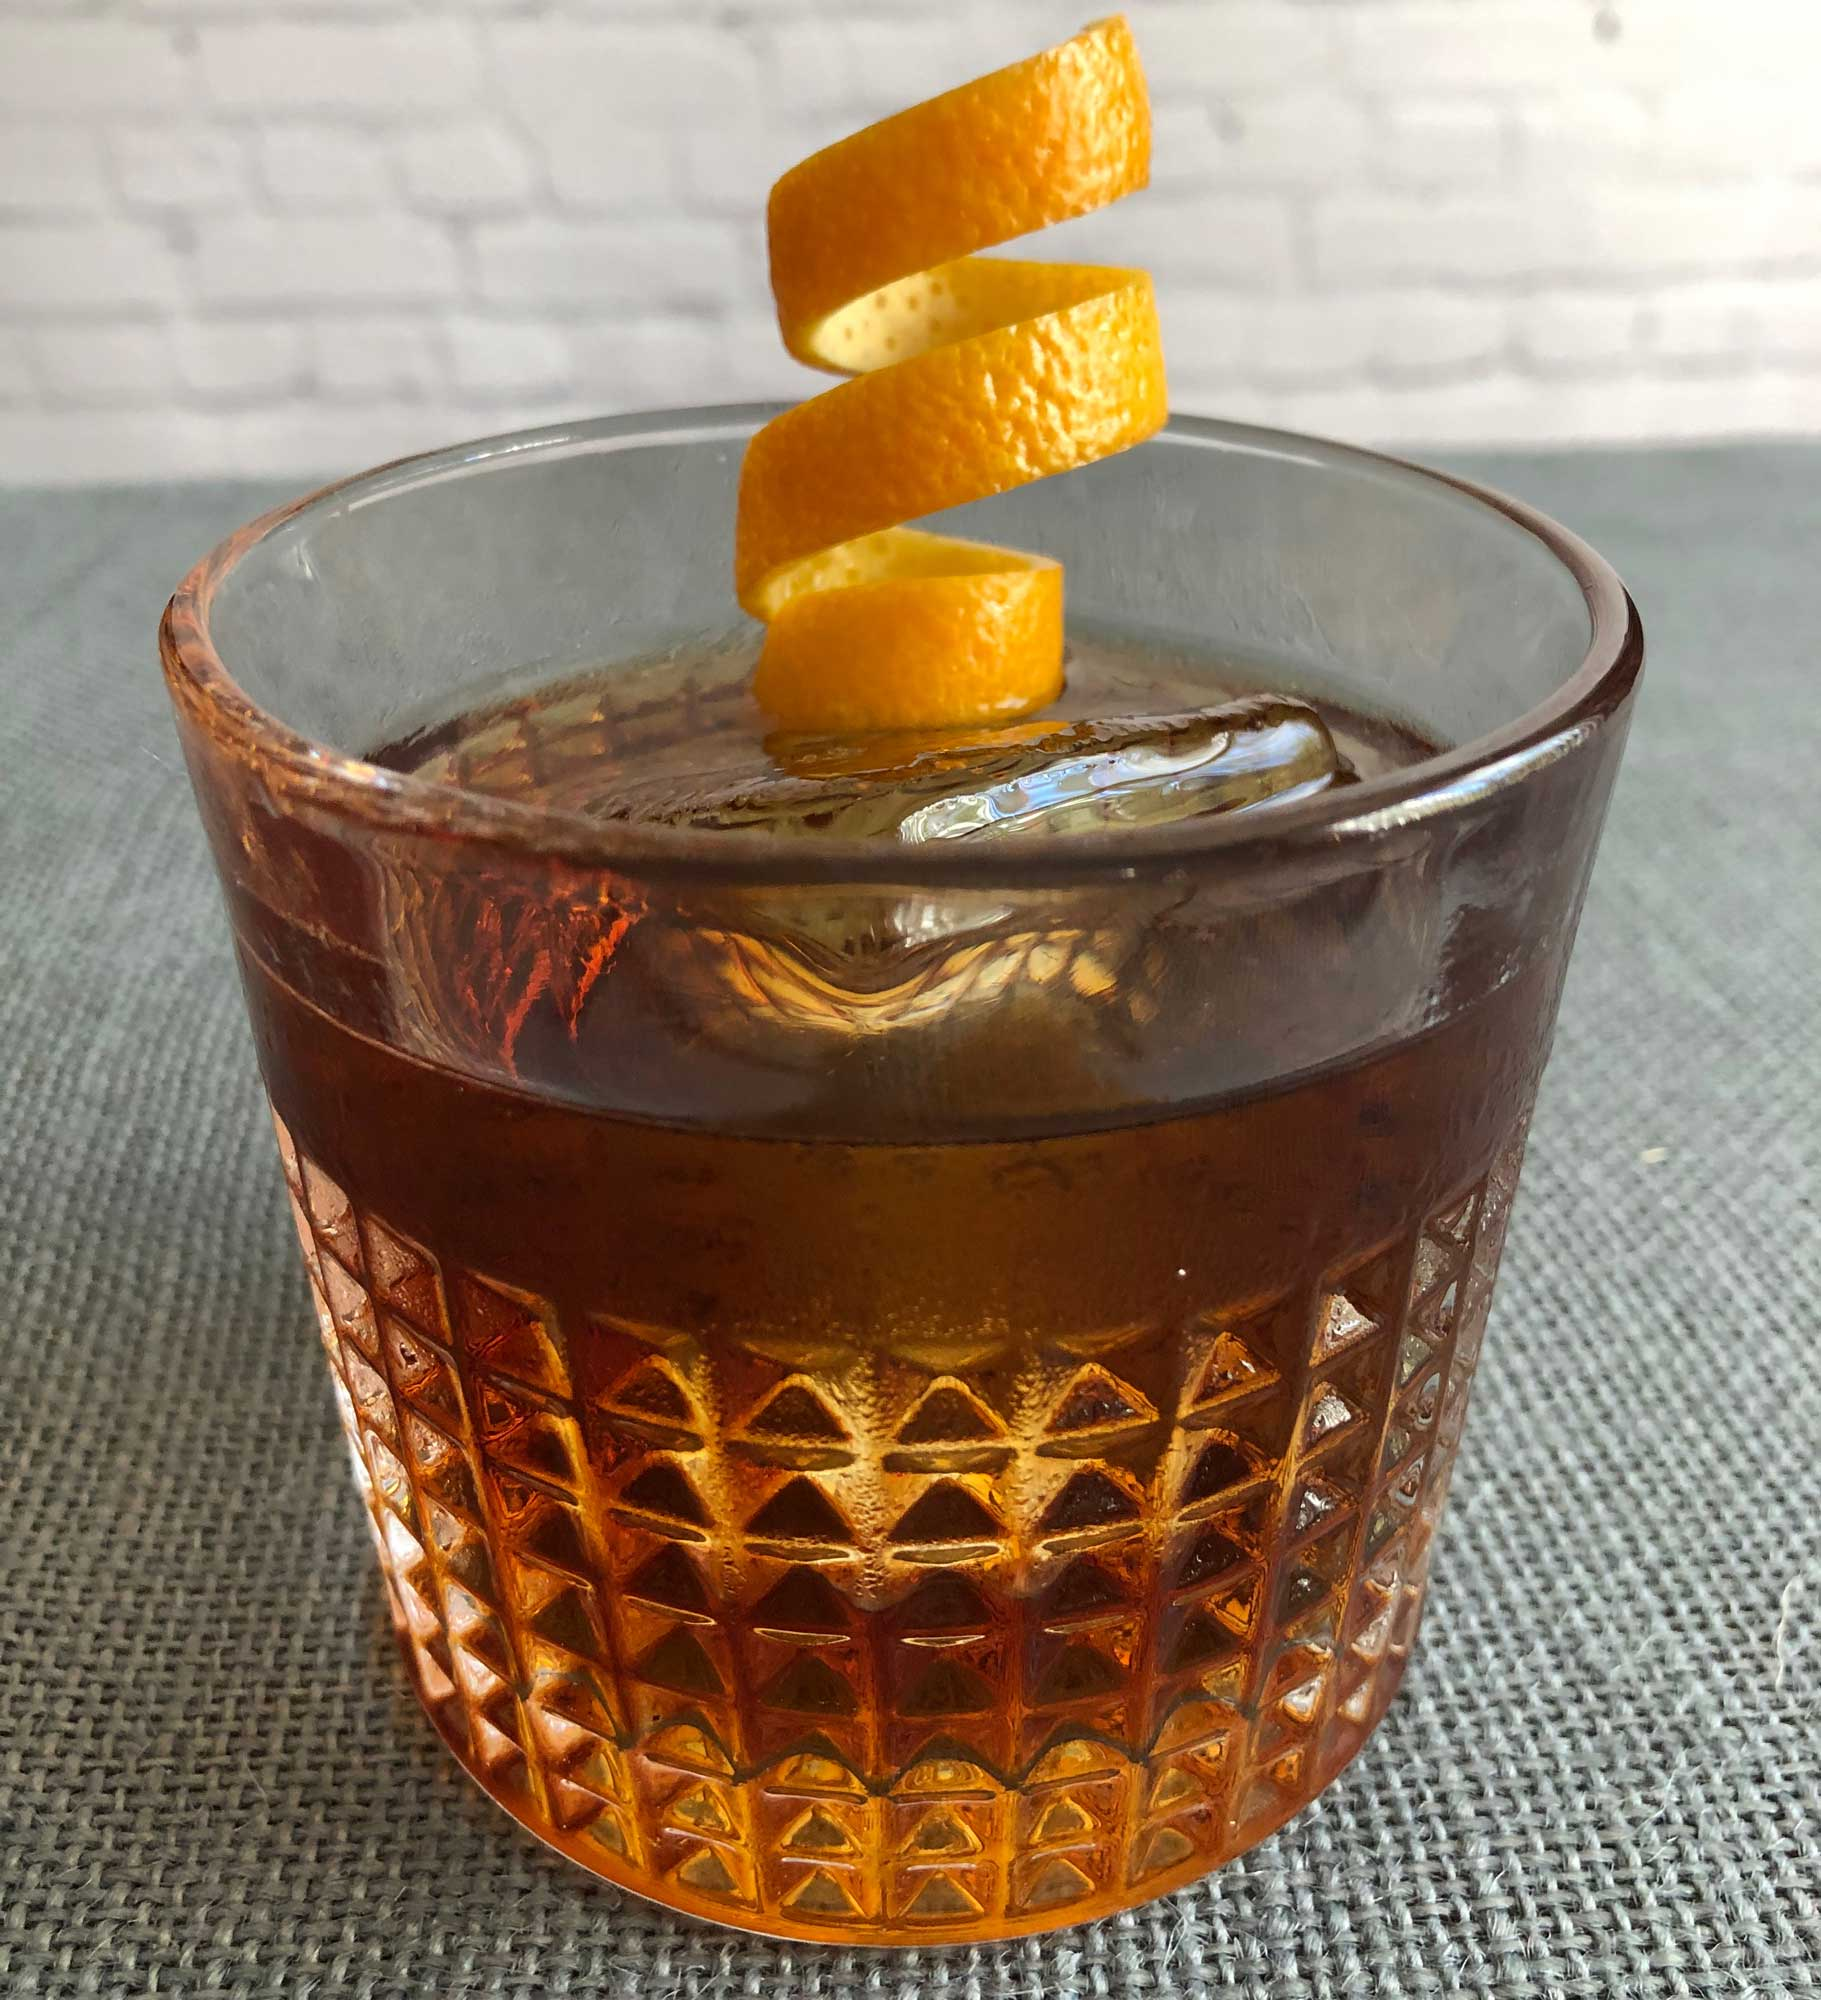 An example of the Fire on the Mountain, the mixed drink (cocktail) featuring Bonal Gentiane-Quina, single-malt scotch, and orange bitters; photo by Lee Edwards